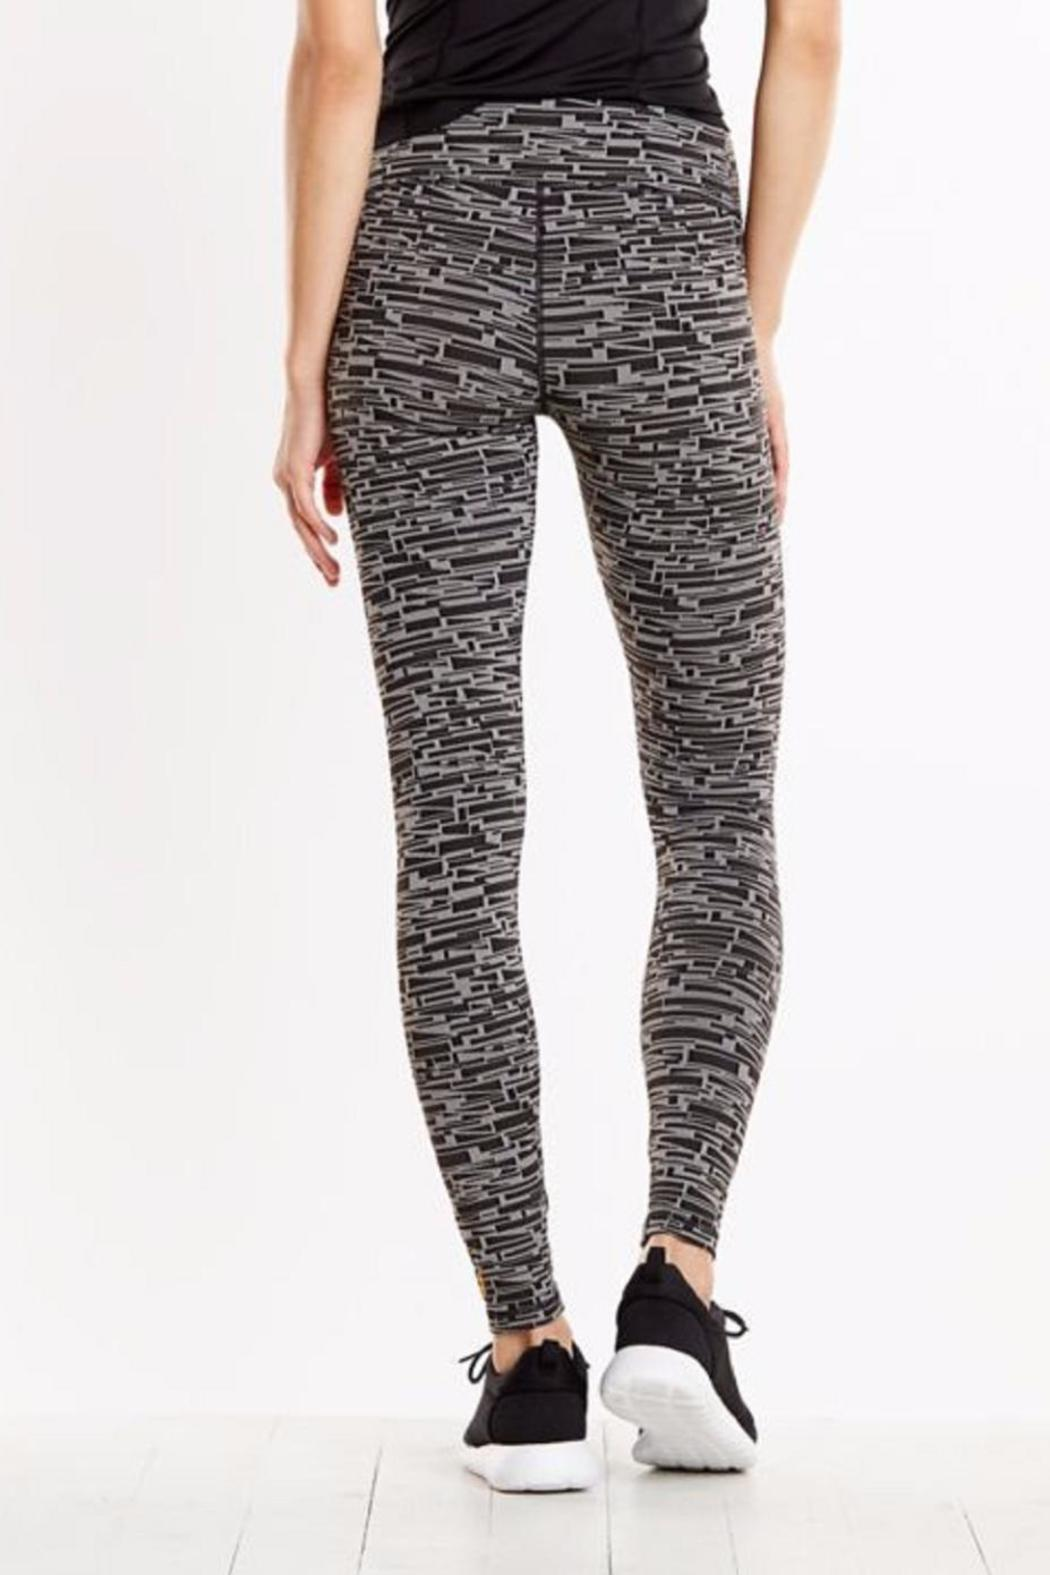 84207f6a08d5e Lucy Studio Hatha Legging from Oregon by The Clothes Tree — Shoptiques